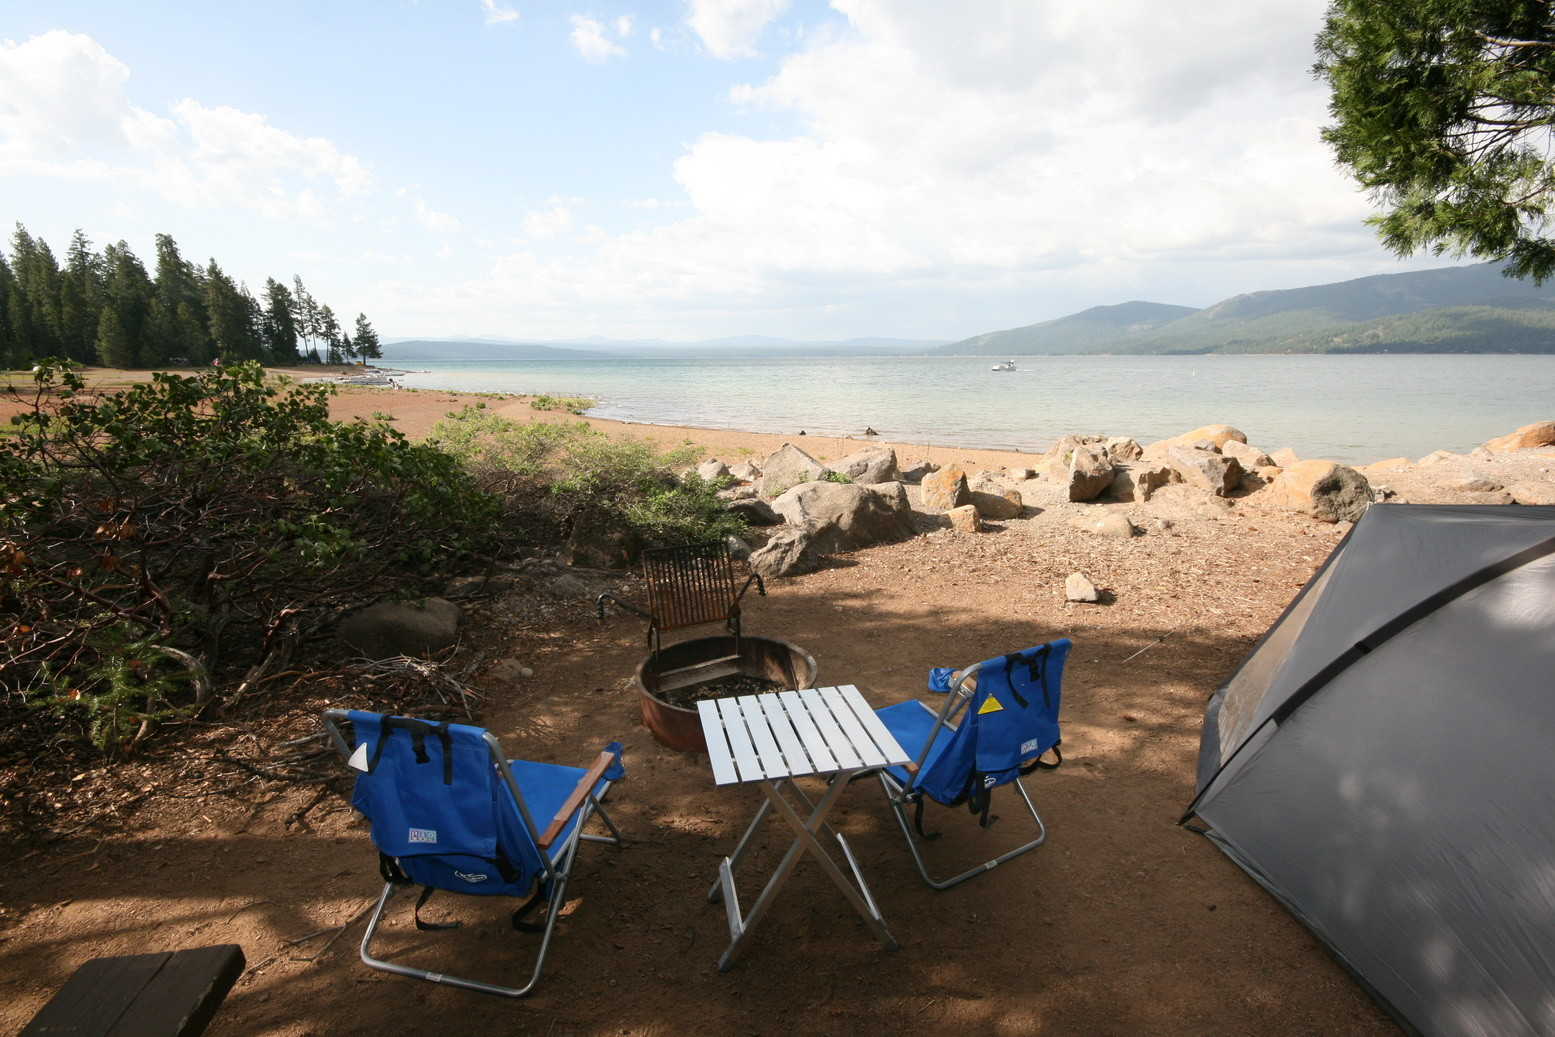 Campground am Ufer des Lake Almanor